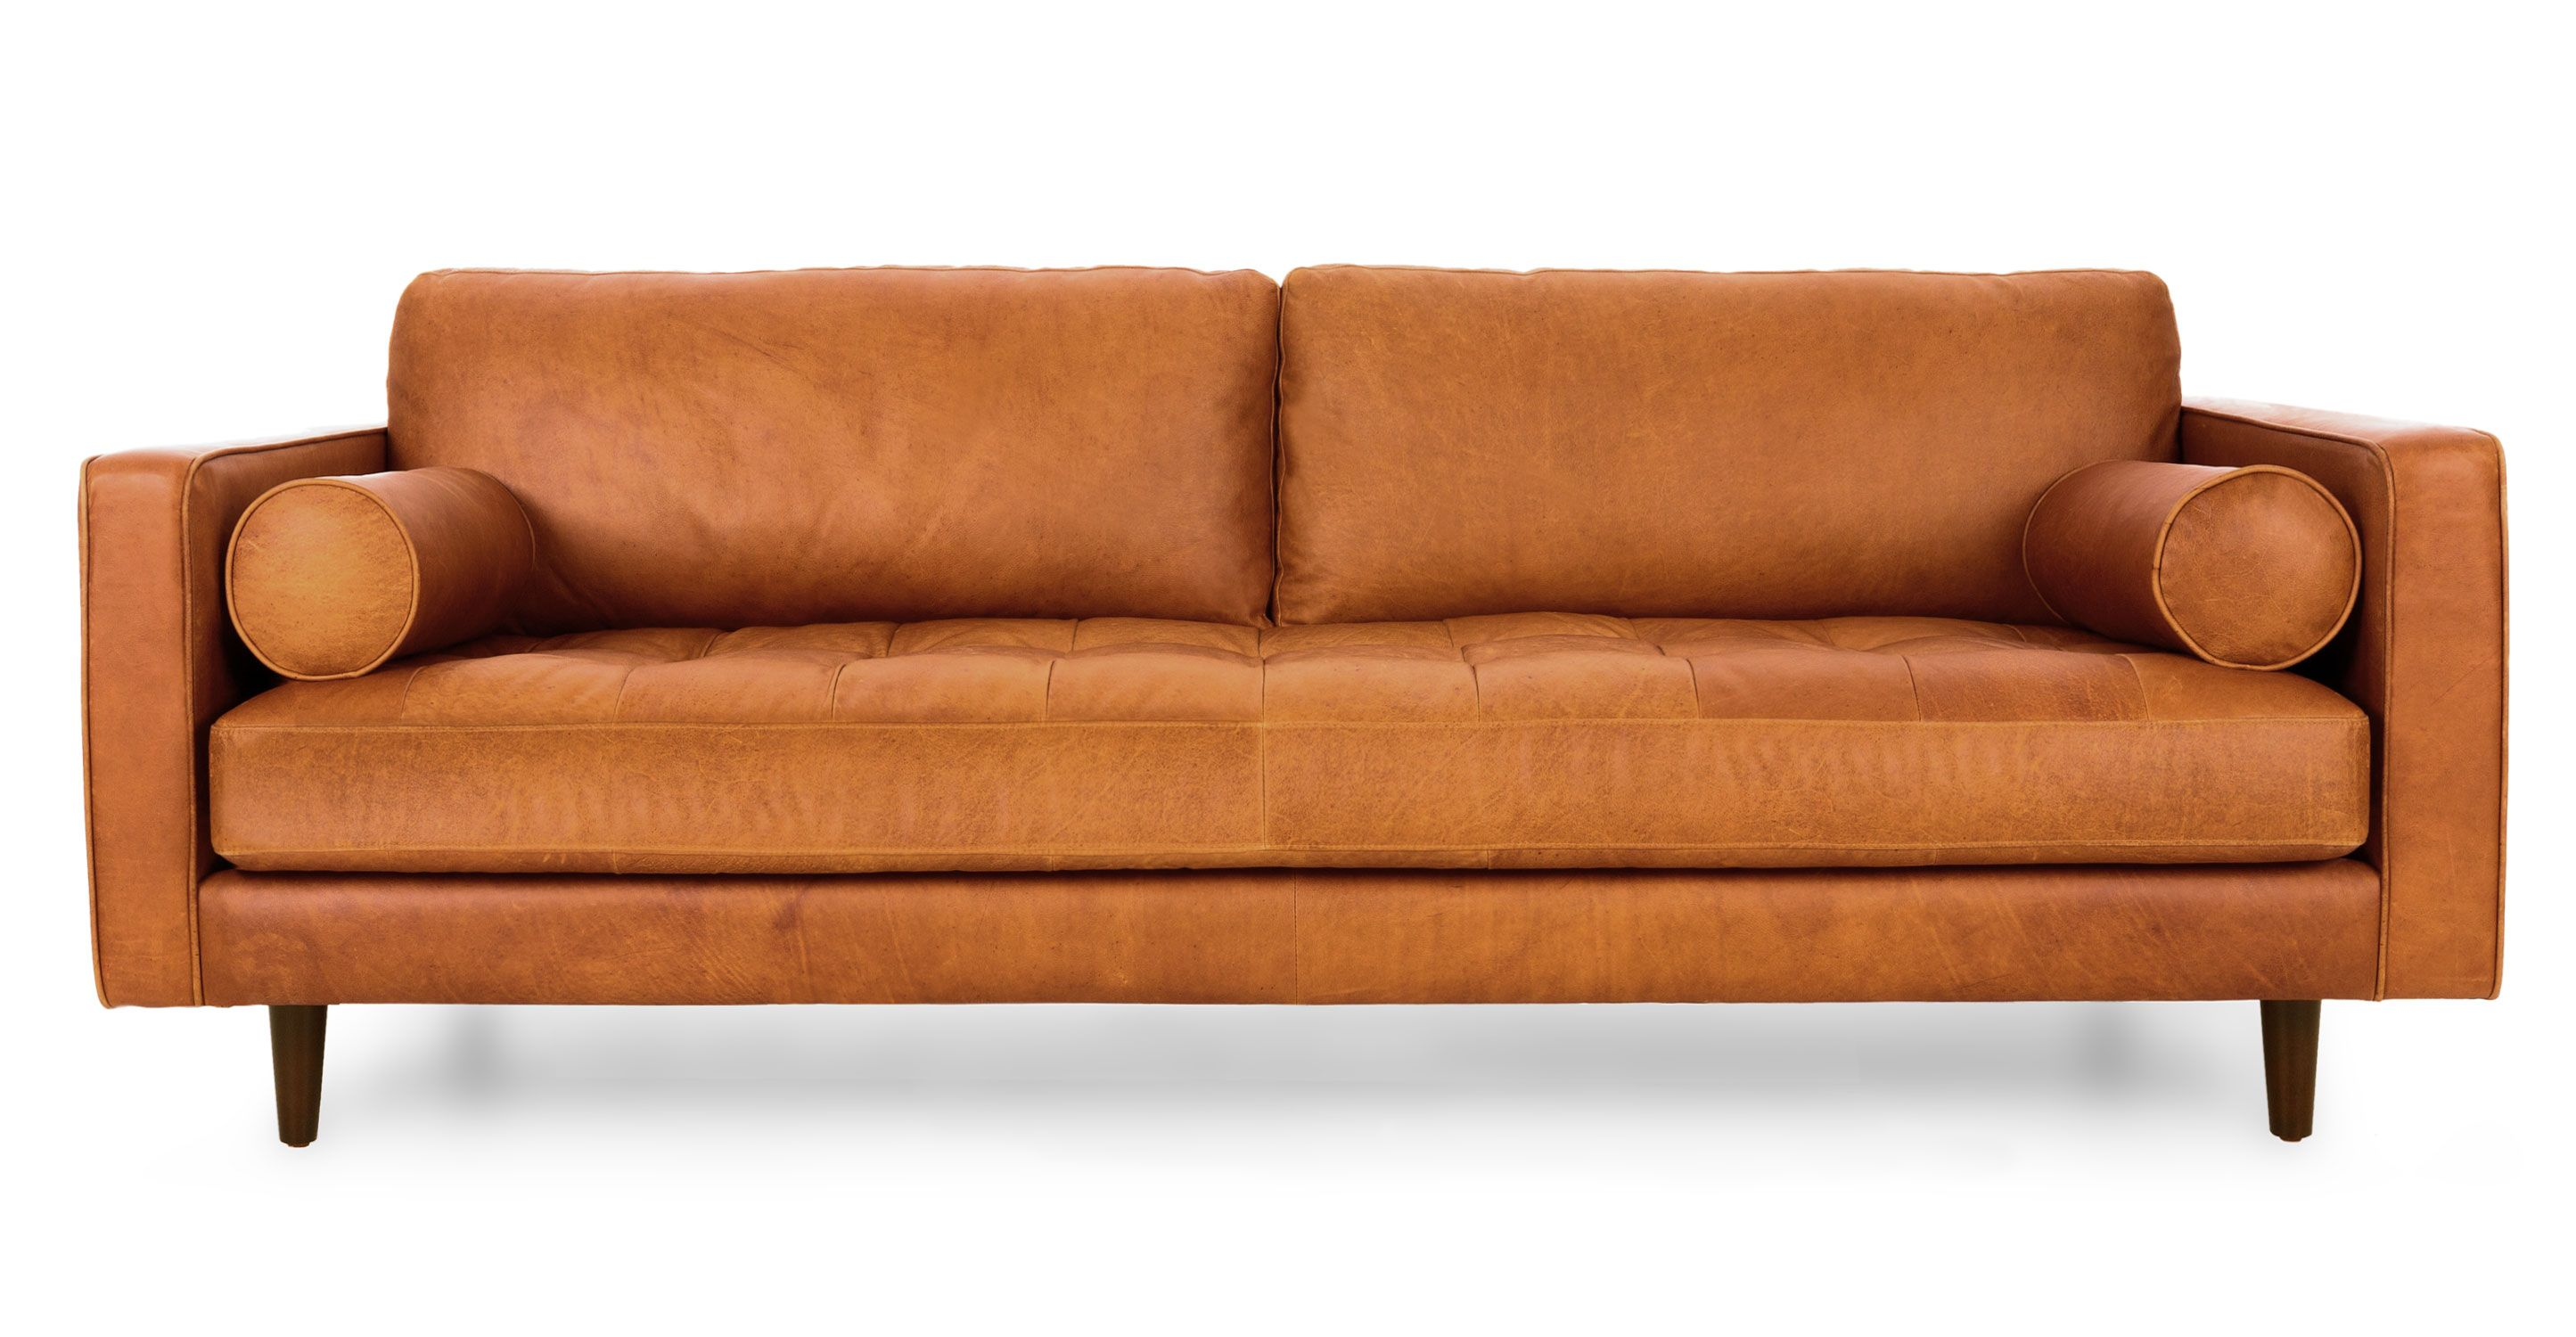 Tan Brown Leather Sofa   Italian Leather | Article Sven Modern Furniture